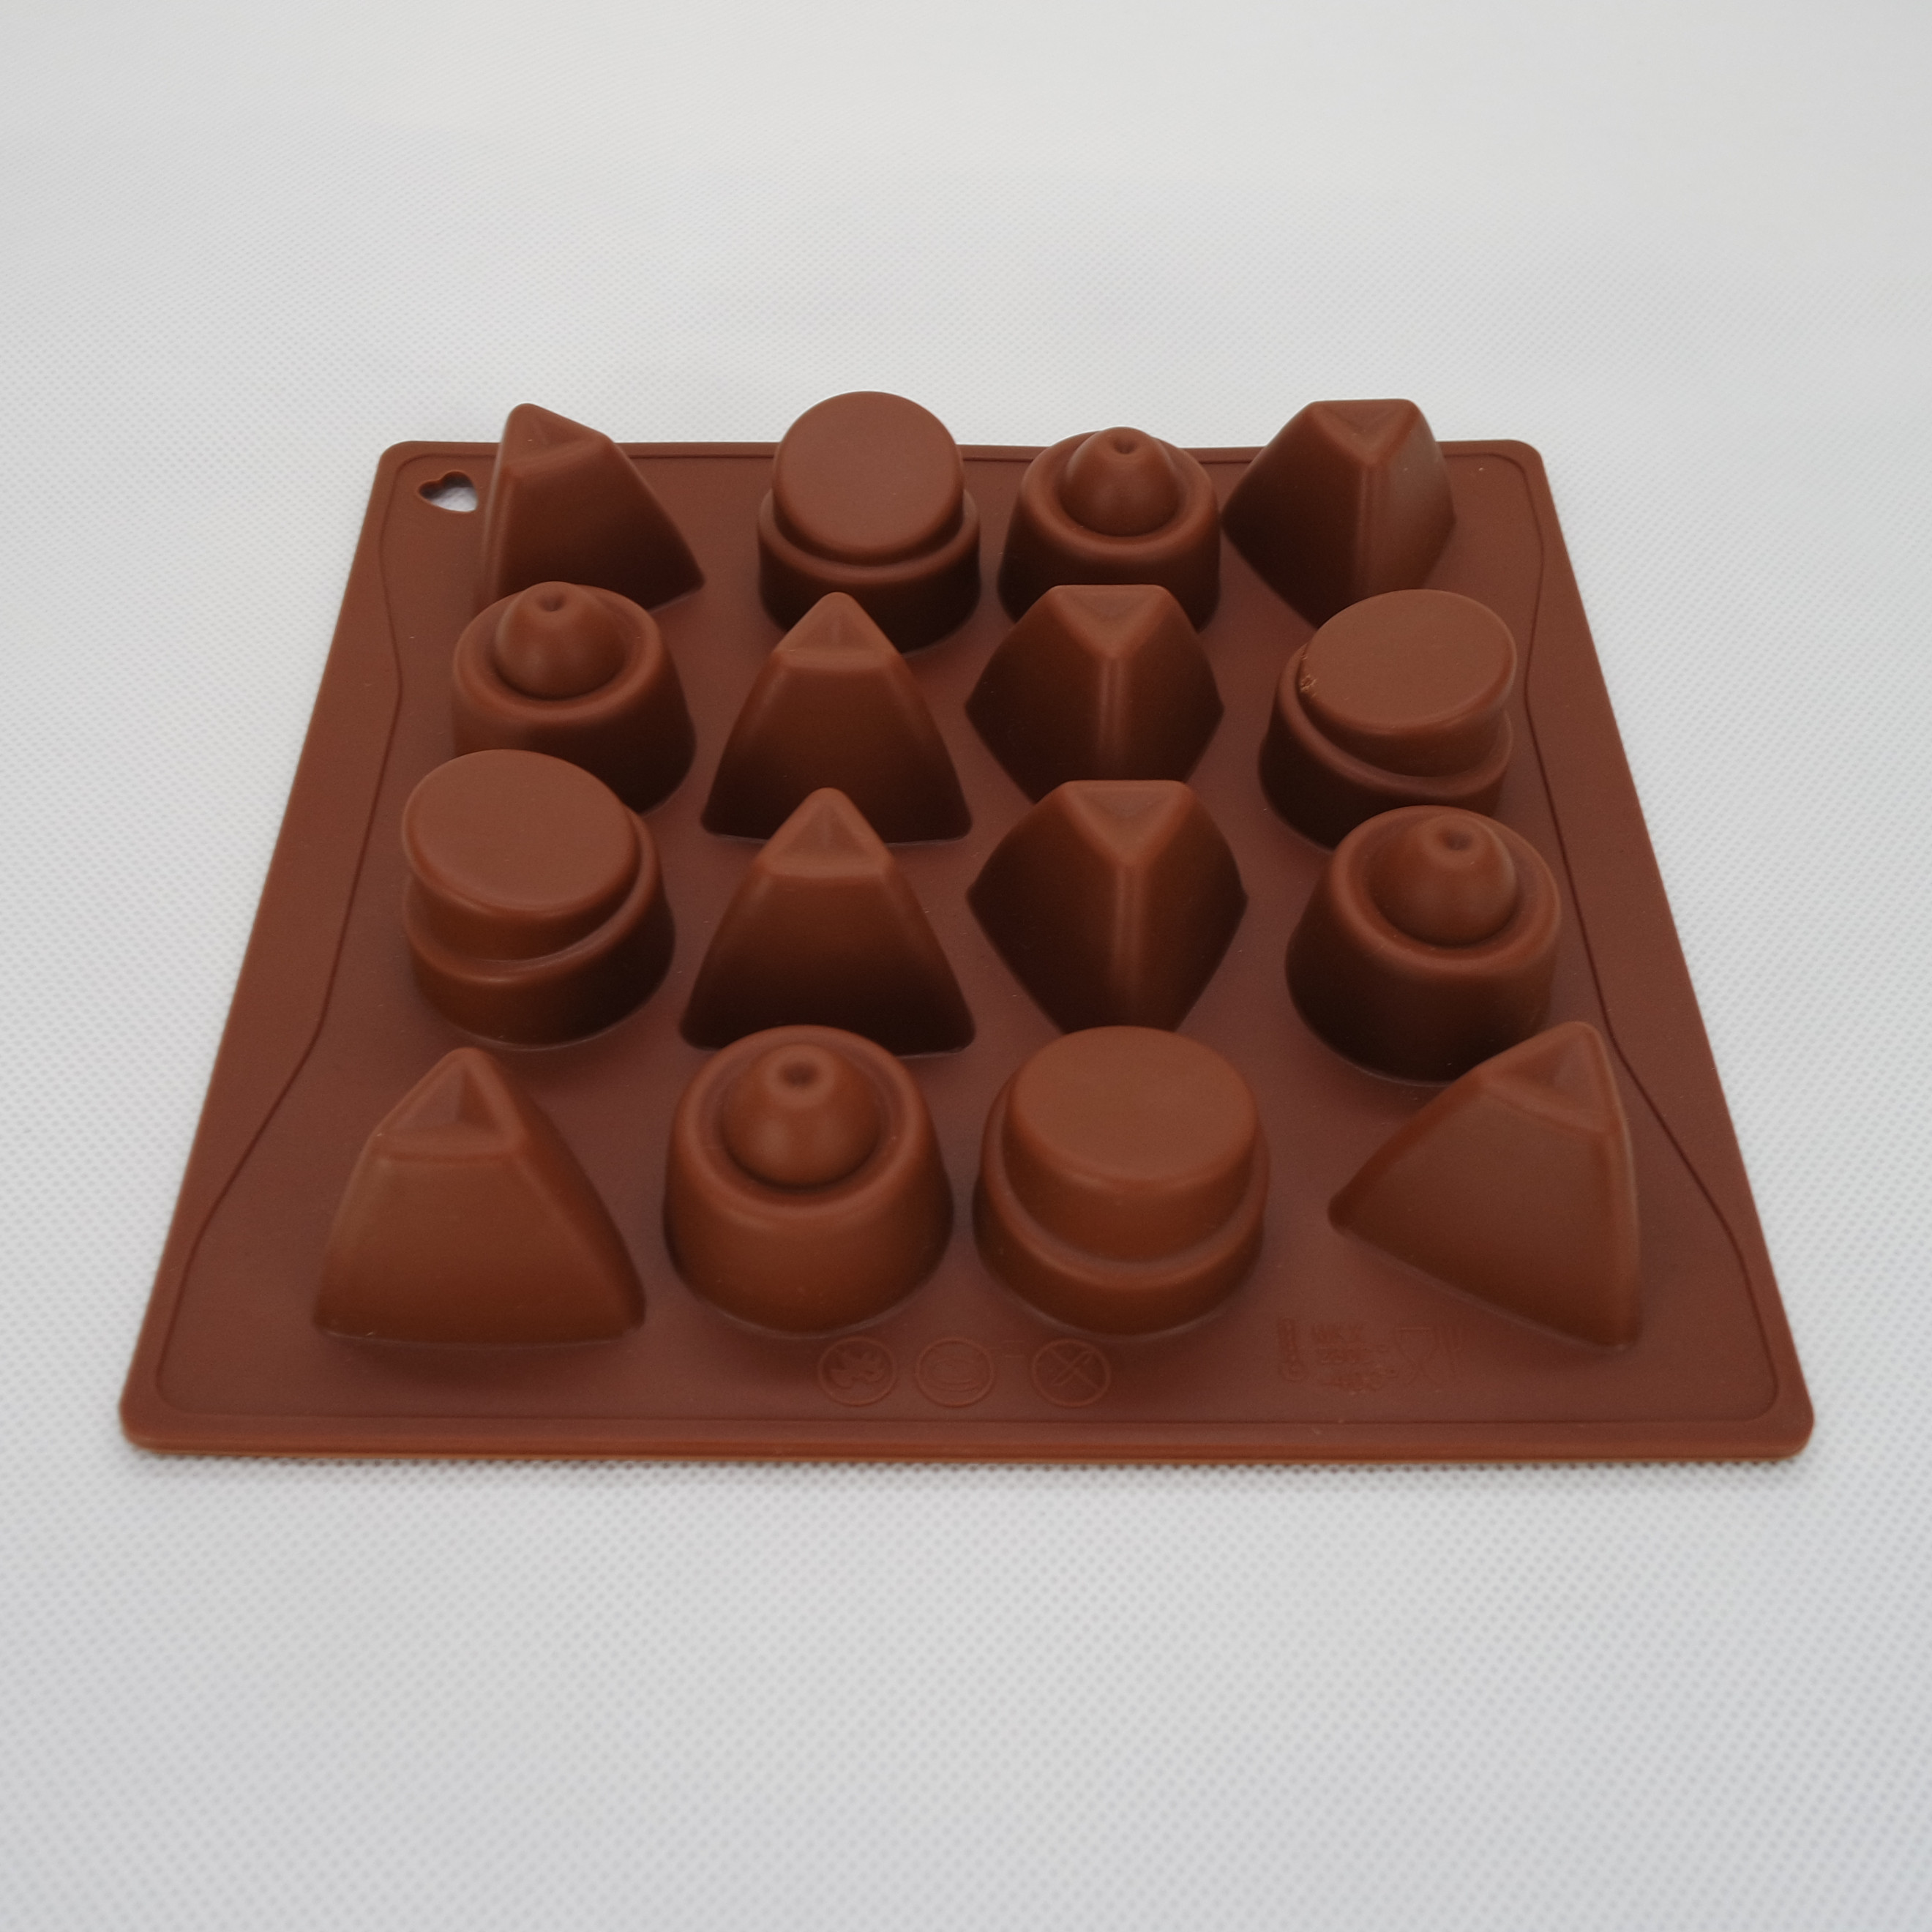 CXCH-015	Silicone Bakeware Chocolate Mould 16-Cup